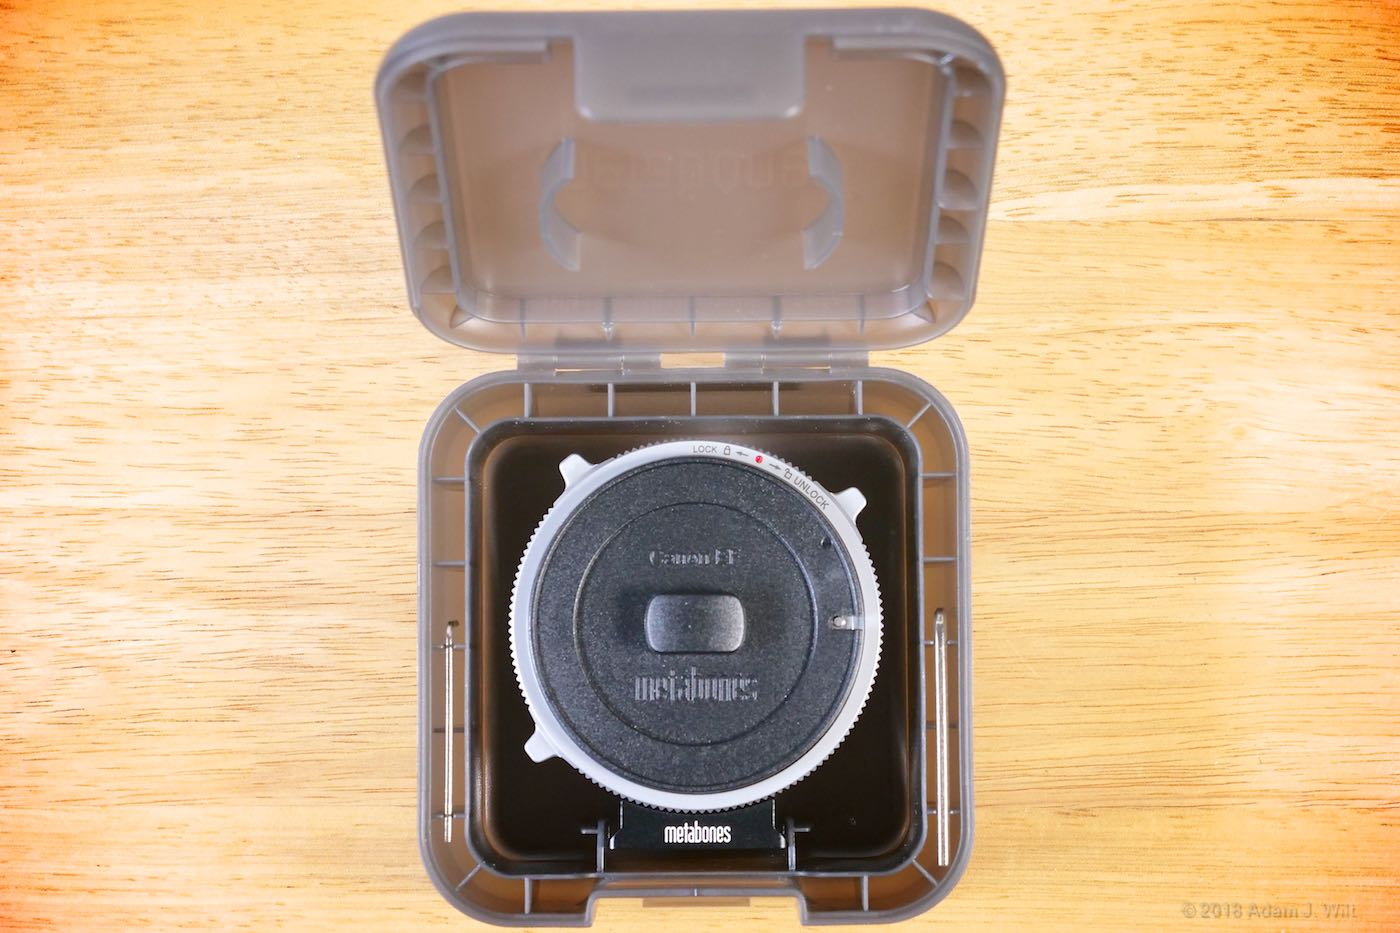 CINE adapter in its case